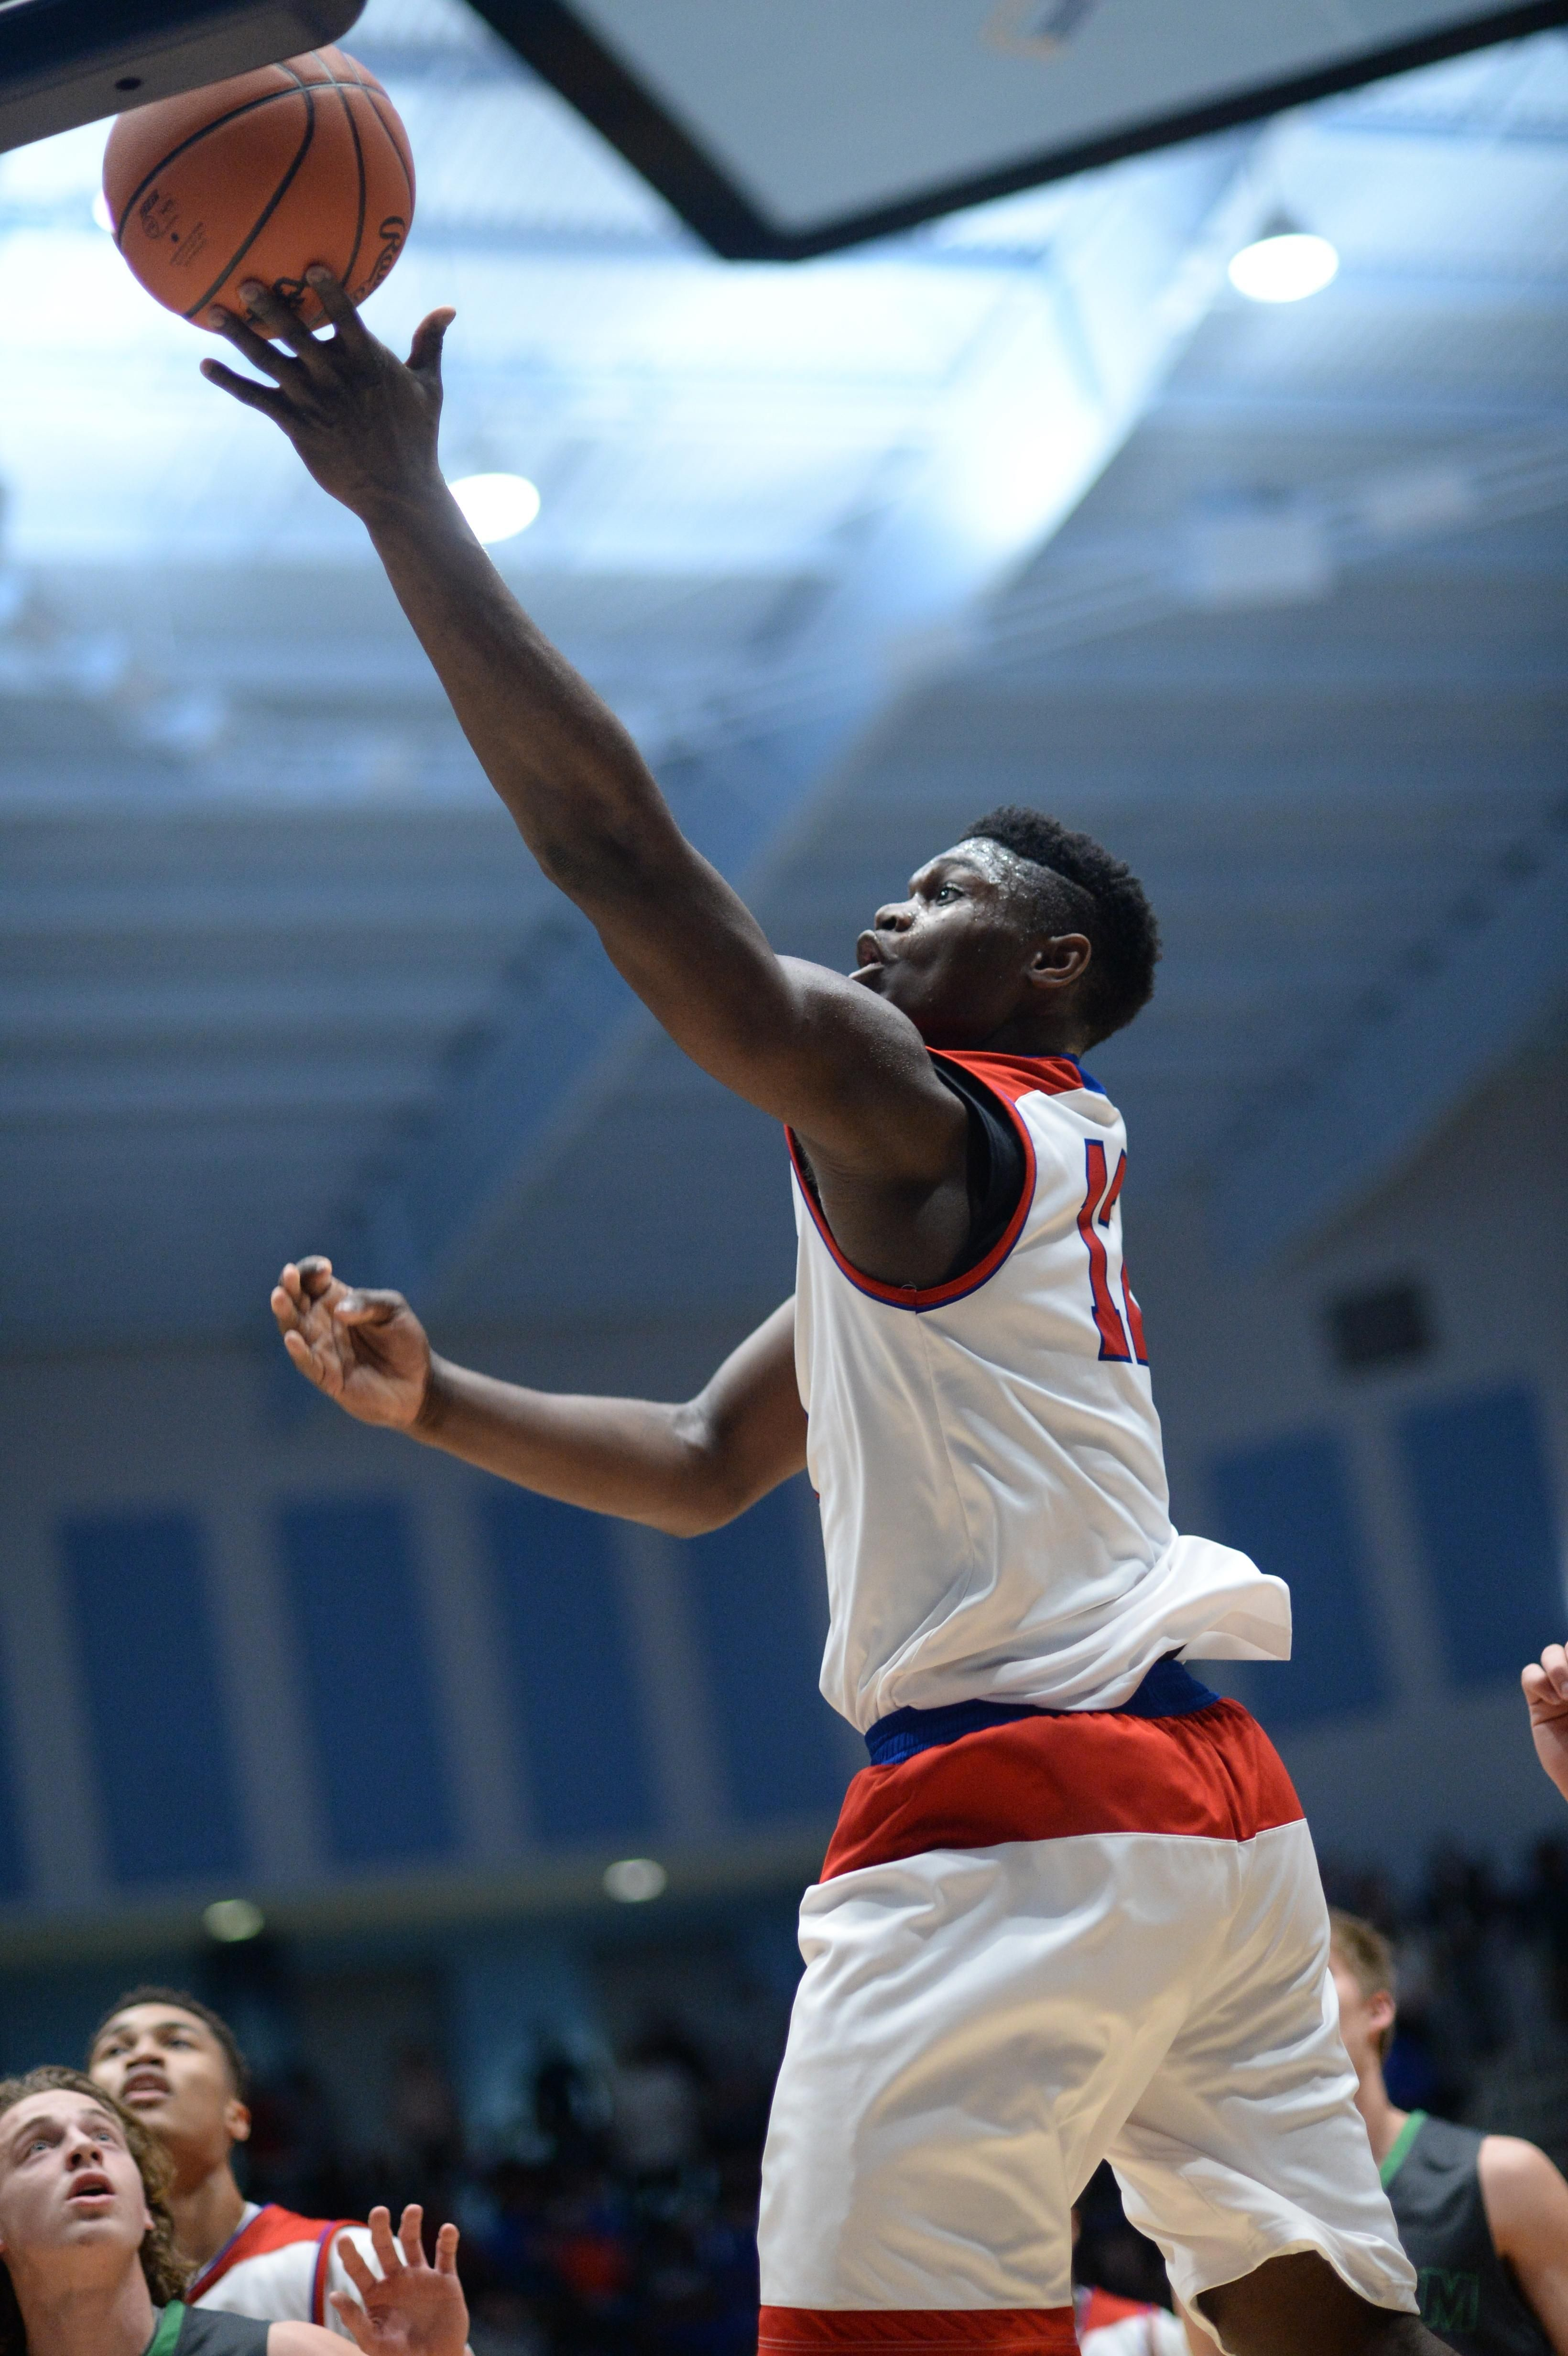 With popularity growing, Zion Williamson turns in show